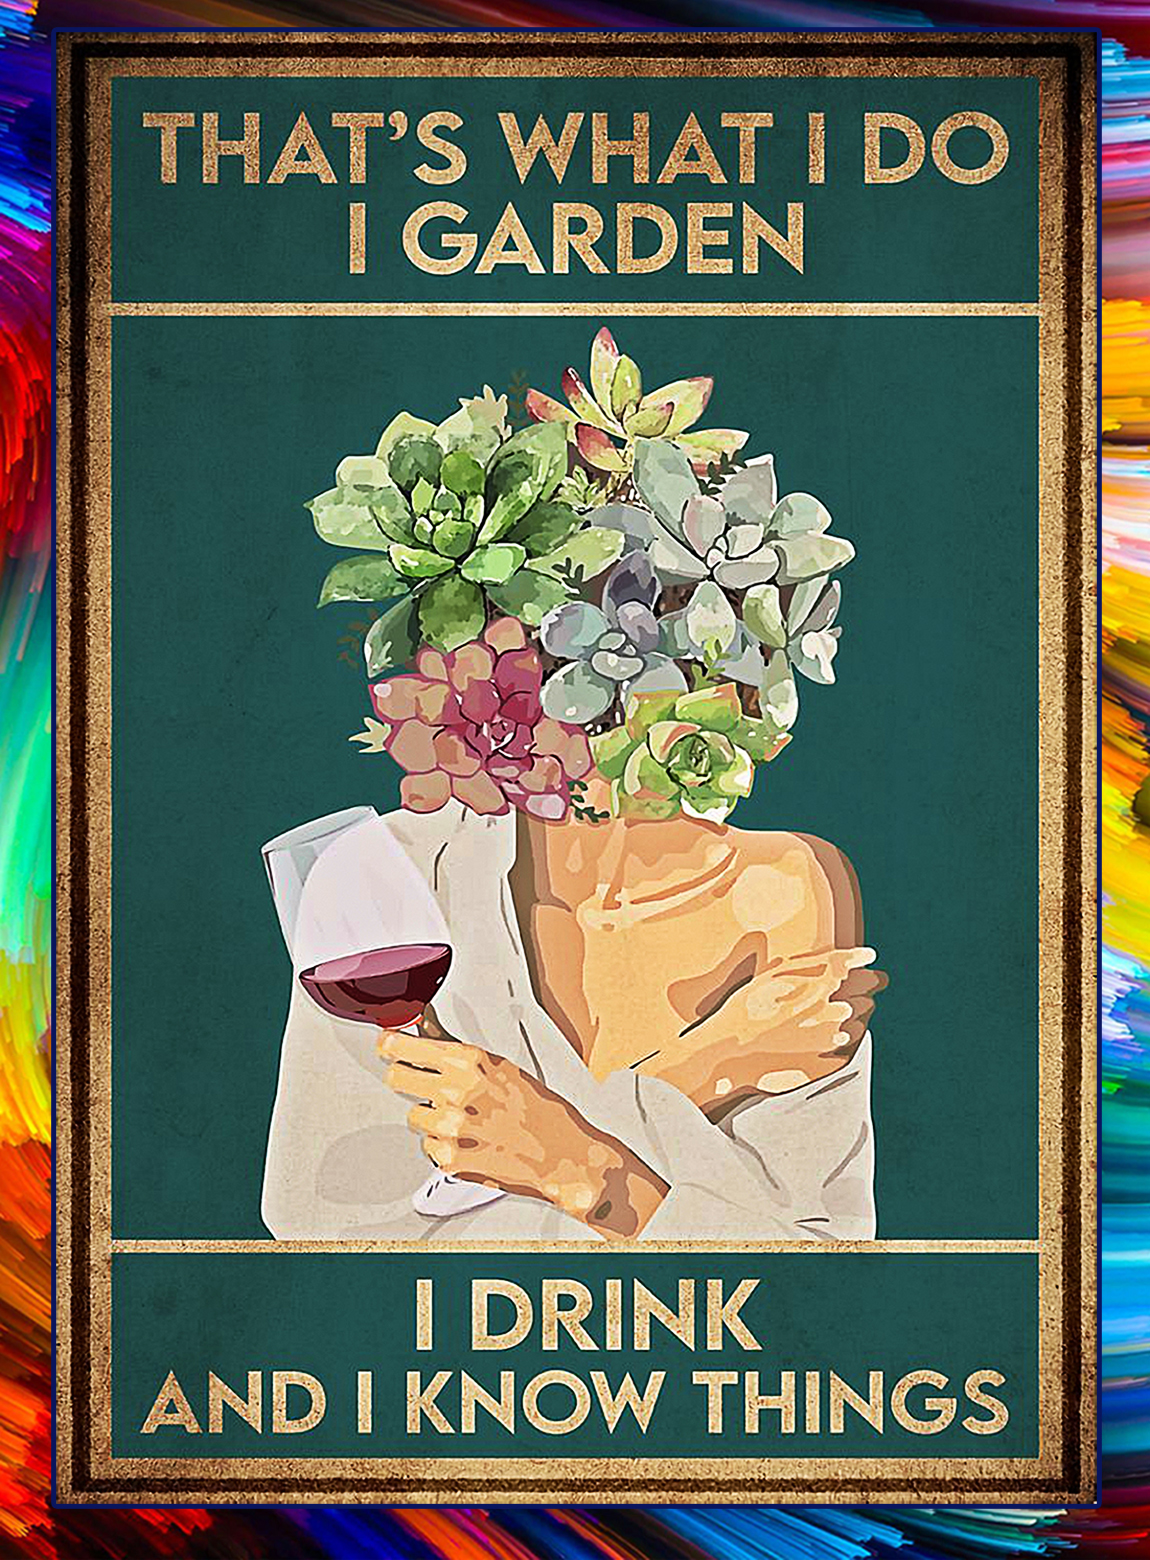 Pot head that's what I do I garden I drink and I know things poster - A3